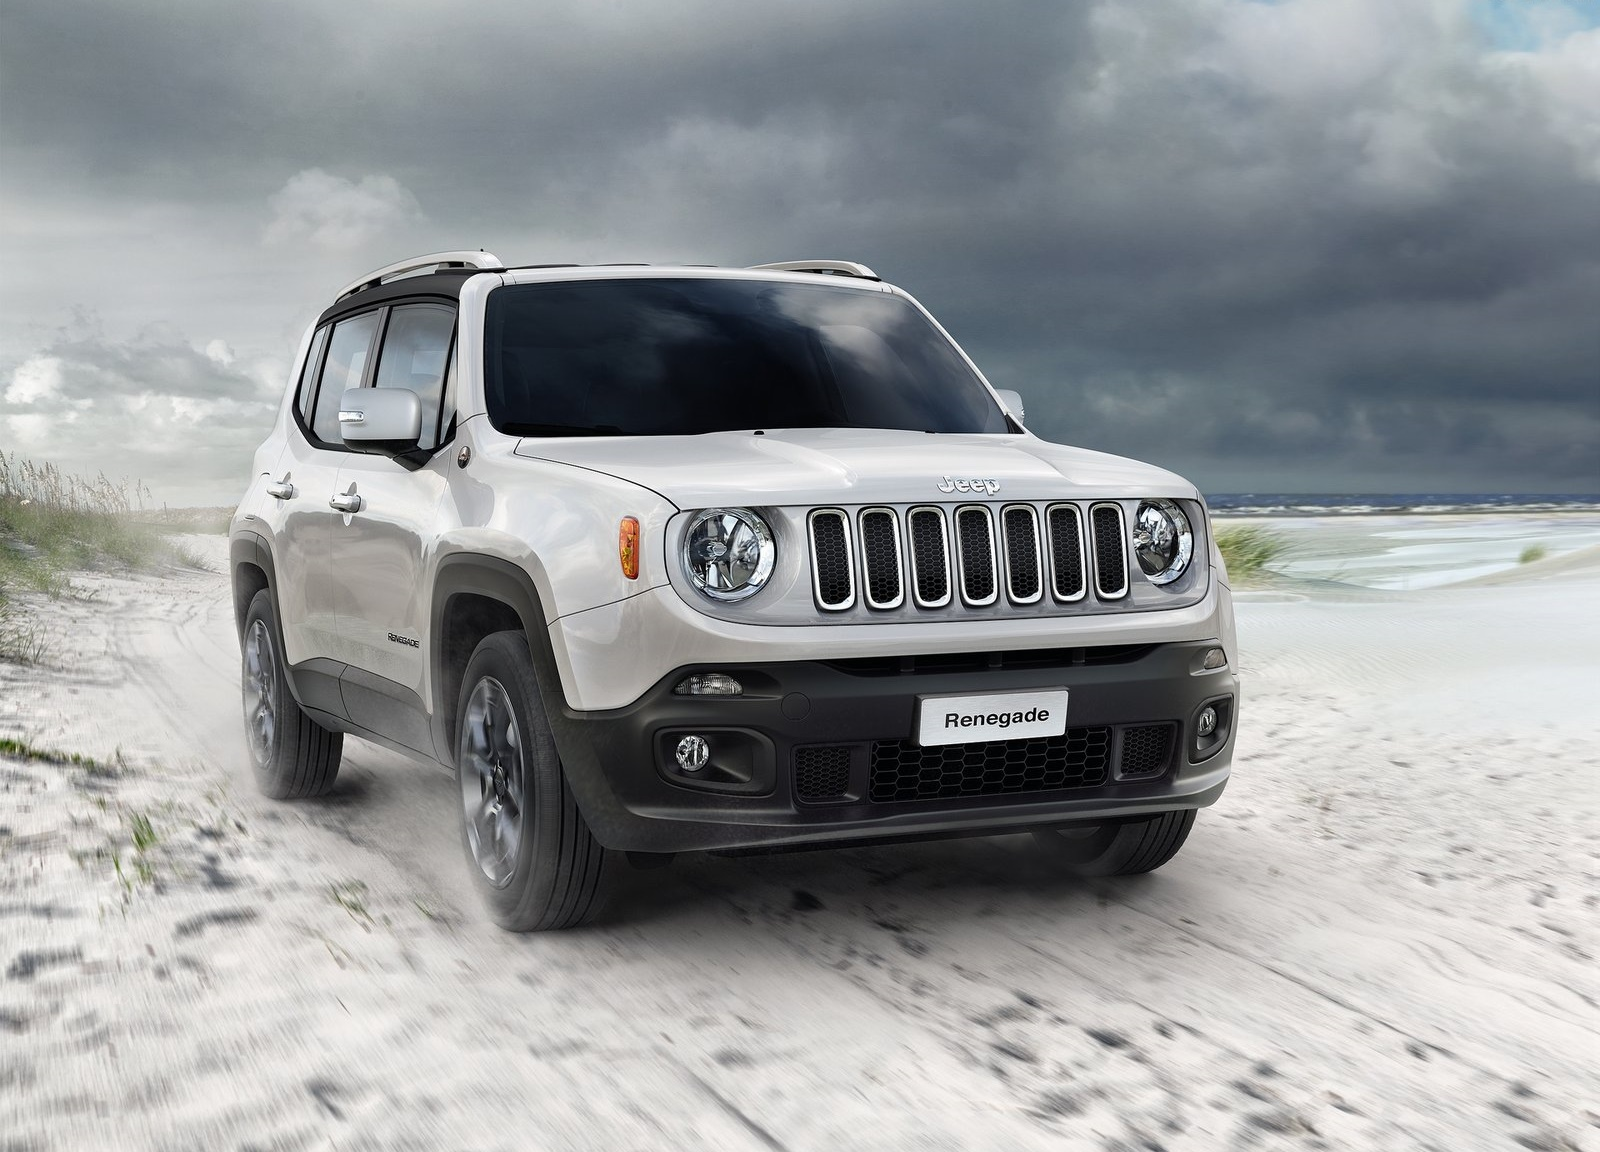 jeep renegade 2017 precios detalles y equipamiento en m xico autos y moda m xico. Black Bedroom Furniture Sets. Home Design Ideas